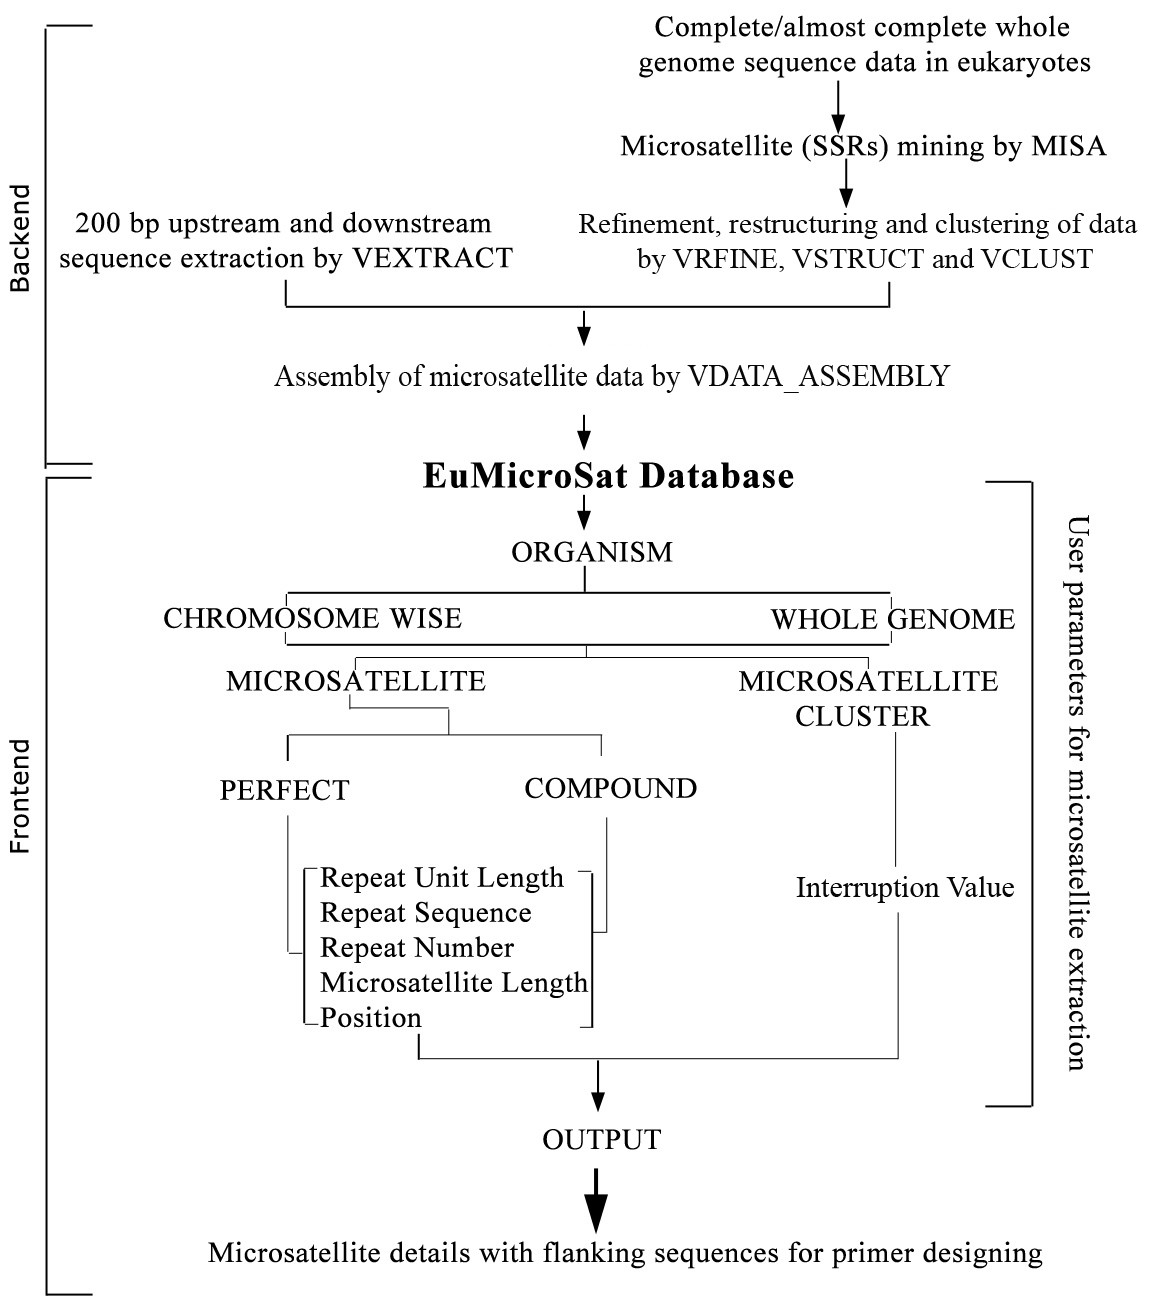 http://static-content.springer.com/image/art%3A10.1186%2F1471-2164-8-225/MediaObjects/12864_2006_Article_938_Fig1_HTML.jpg